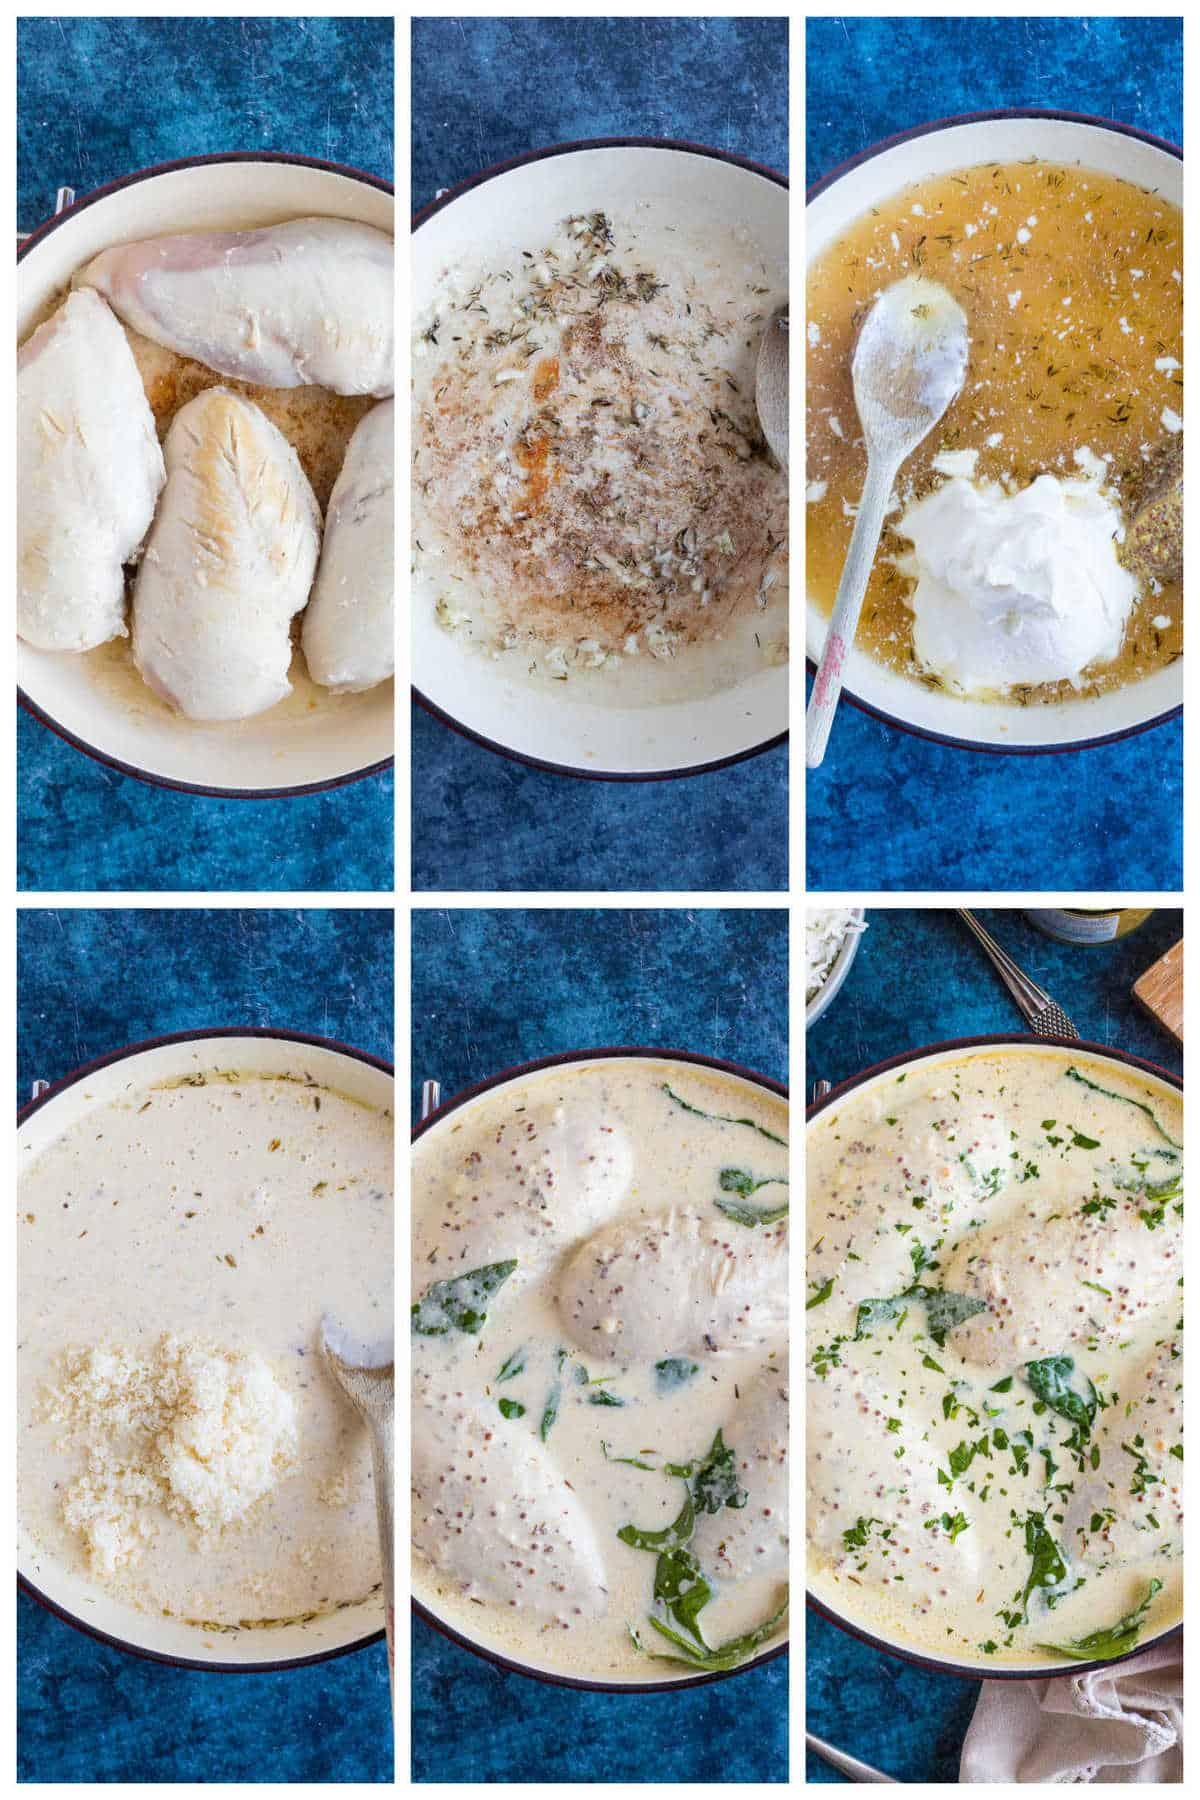 Step by step photo instructions for making the crème fraiche chicken.